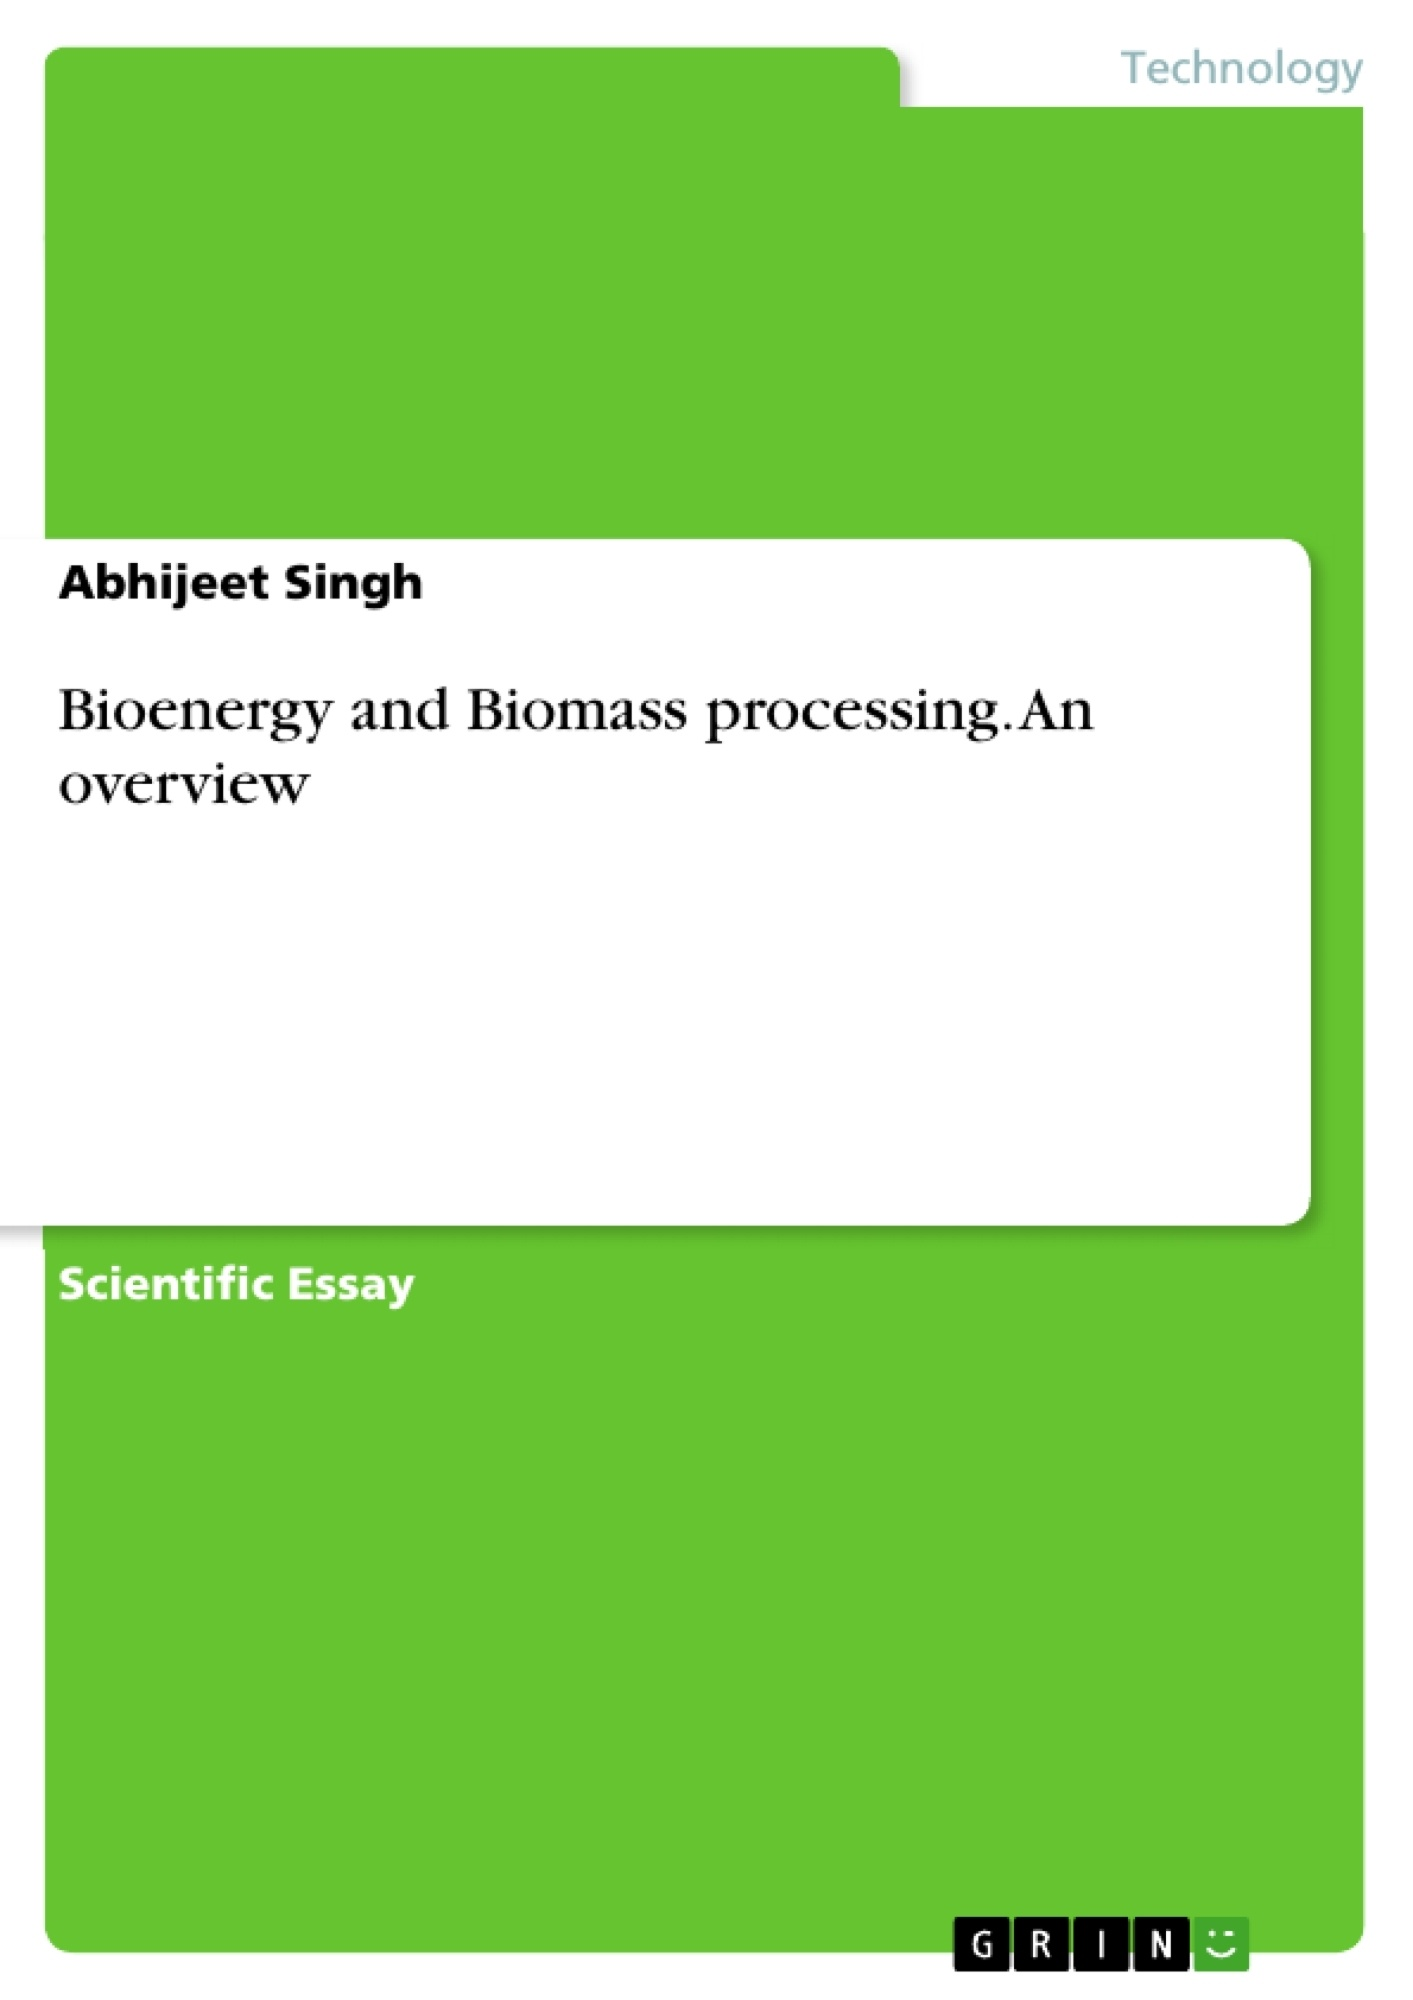 Title: Bioenergy and Biomass processing. An overview